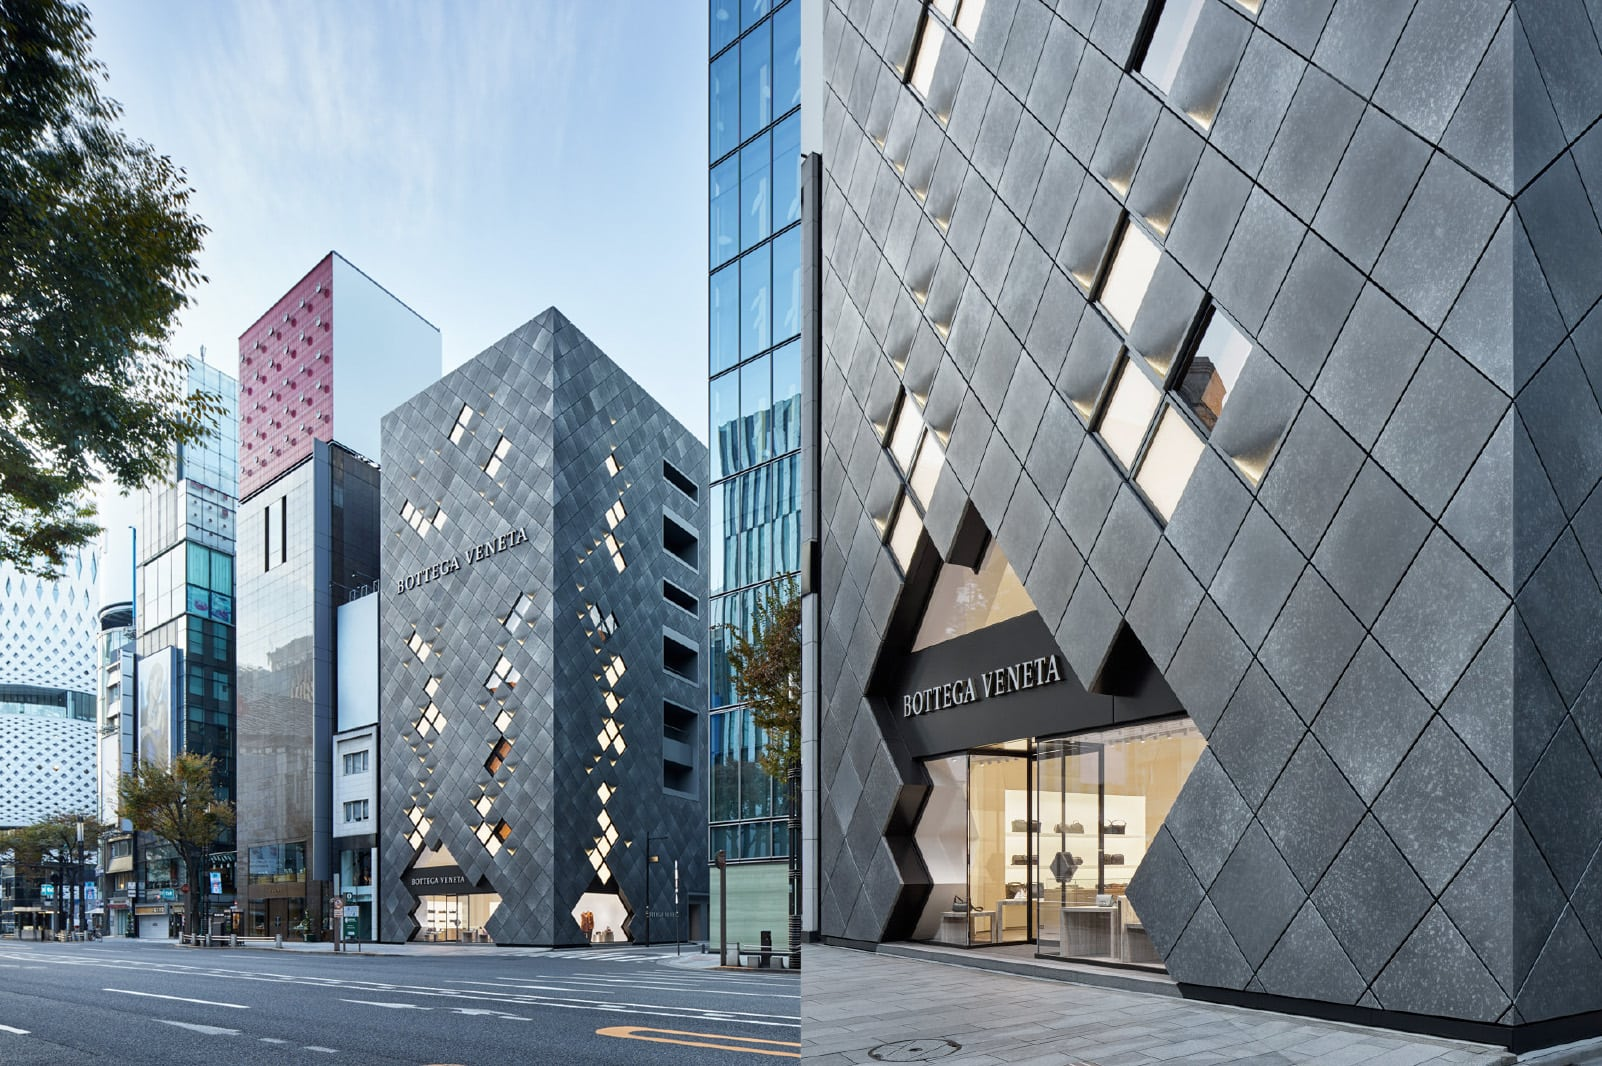 b27116e034550 Spanning six floors with 800 square metres of retail space, Bottega  Veneta's new flagship store is the brand's biggest retail presence in Asia,  ...